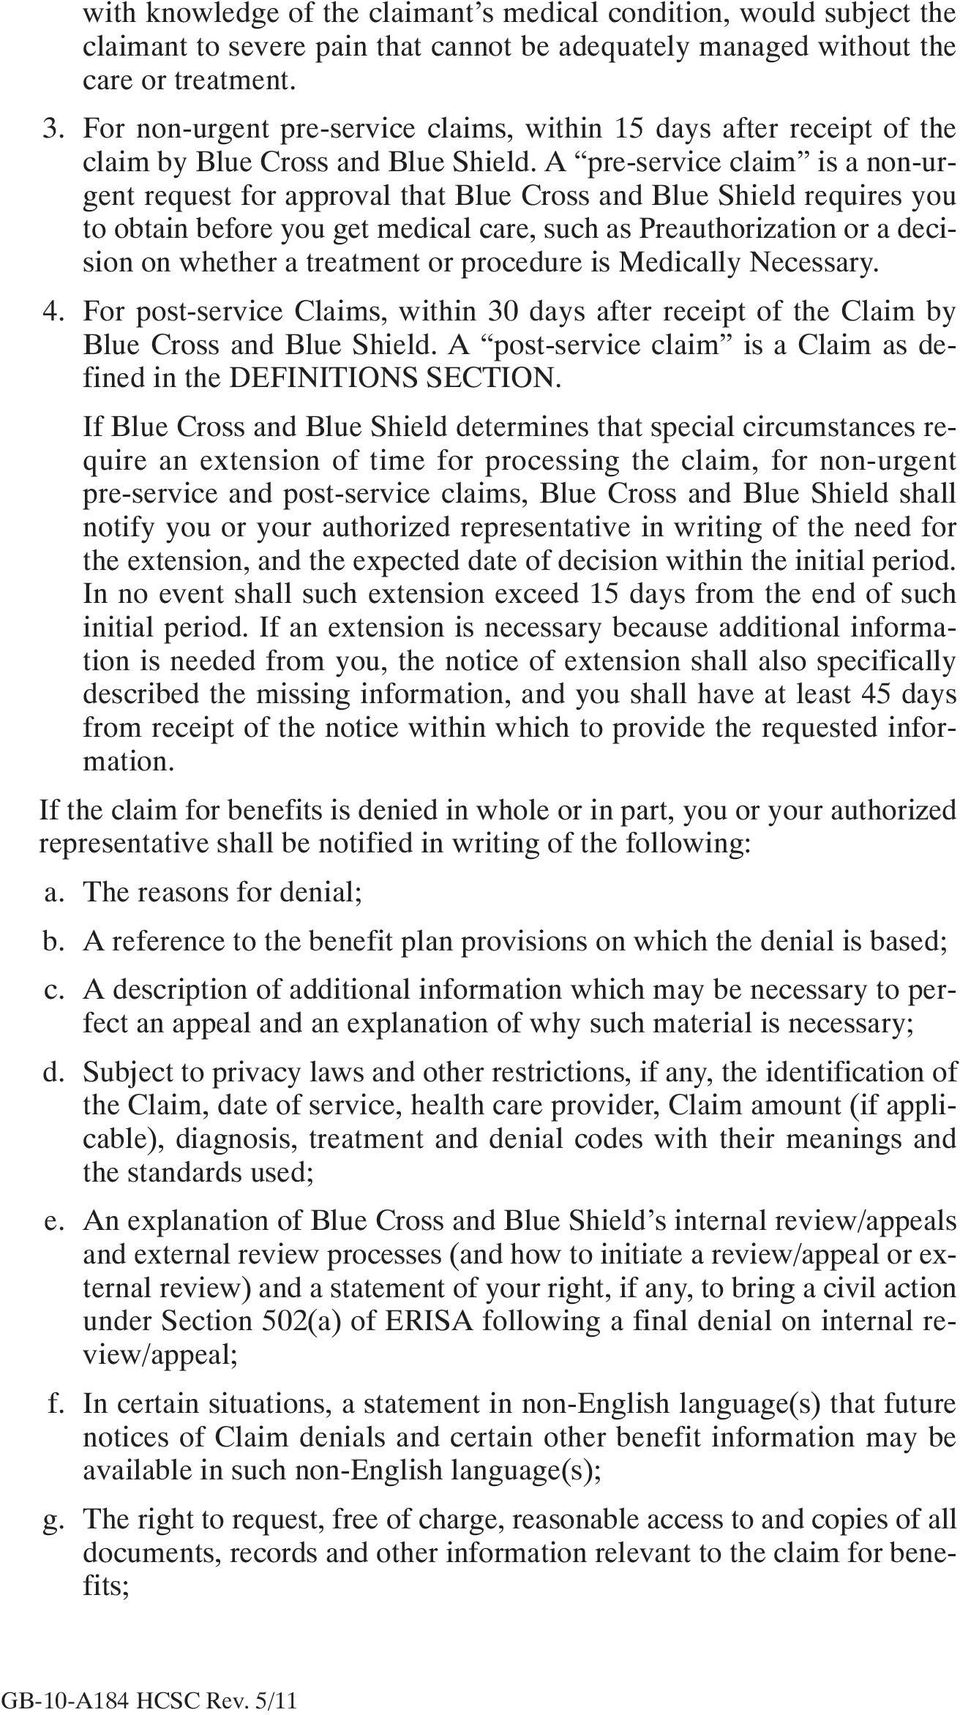 A pre service claim is a non urgent request for approval that Blue Cross and Blue Shield requires you to obtain before you get medical care, such as Preauthorization or a decision on whether a